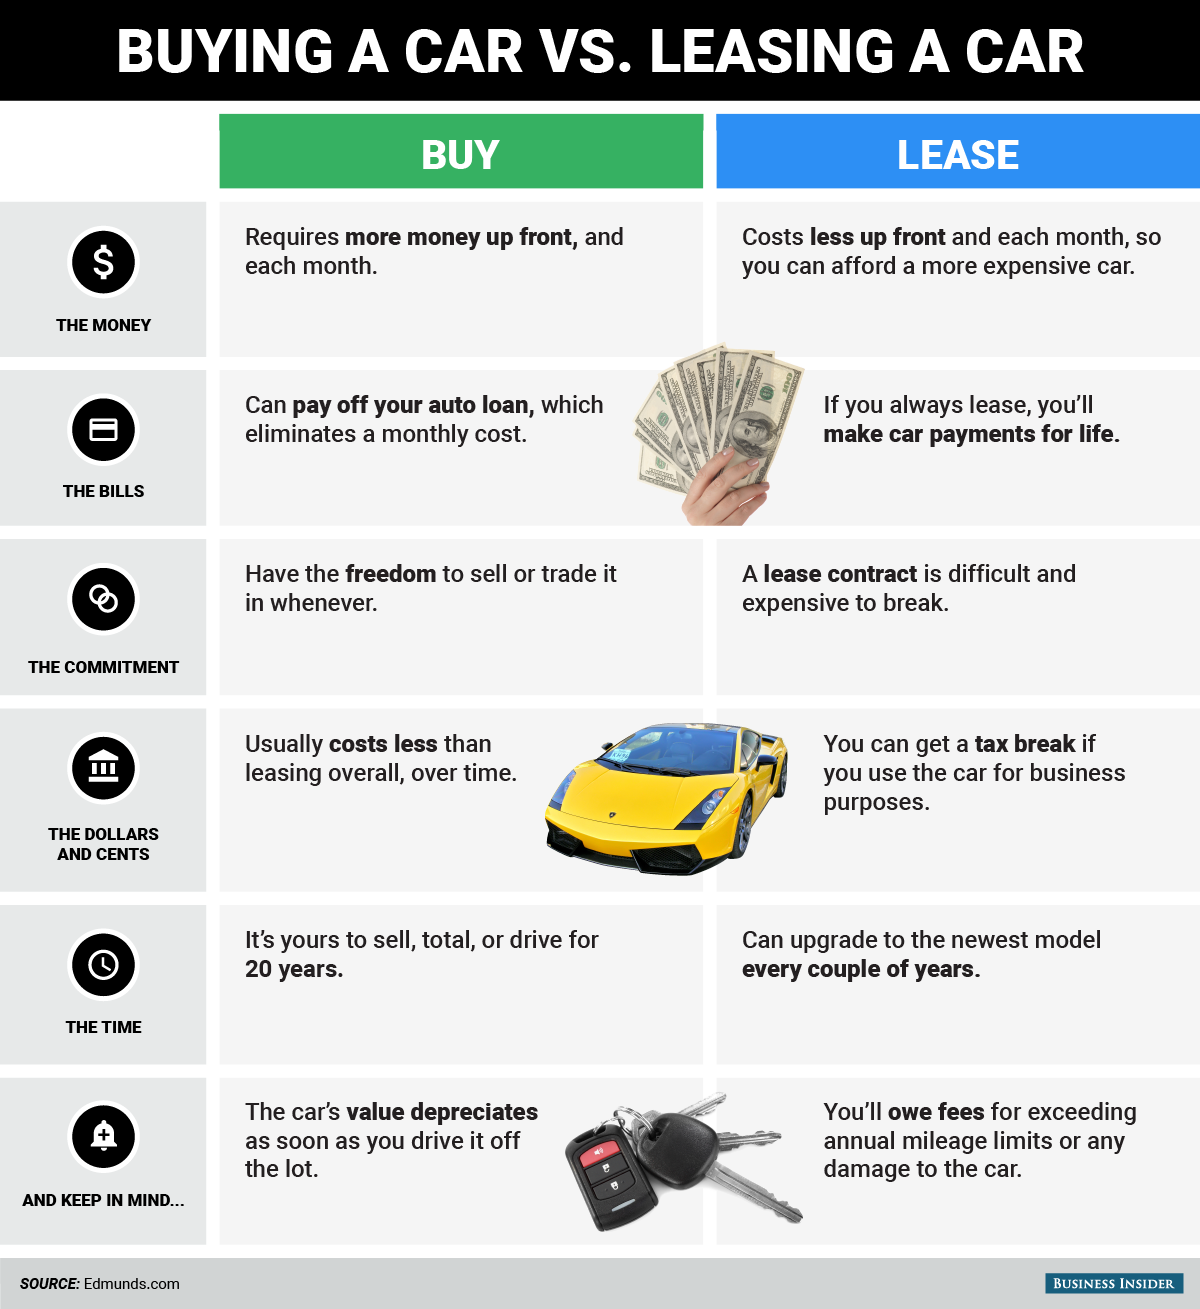 bi_graphics_buying-a-car-vs.-leasing-a-car